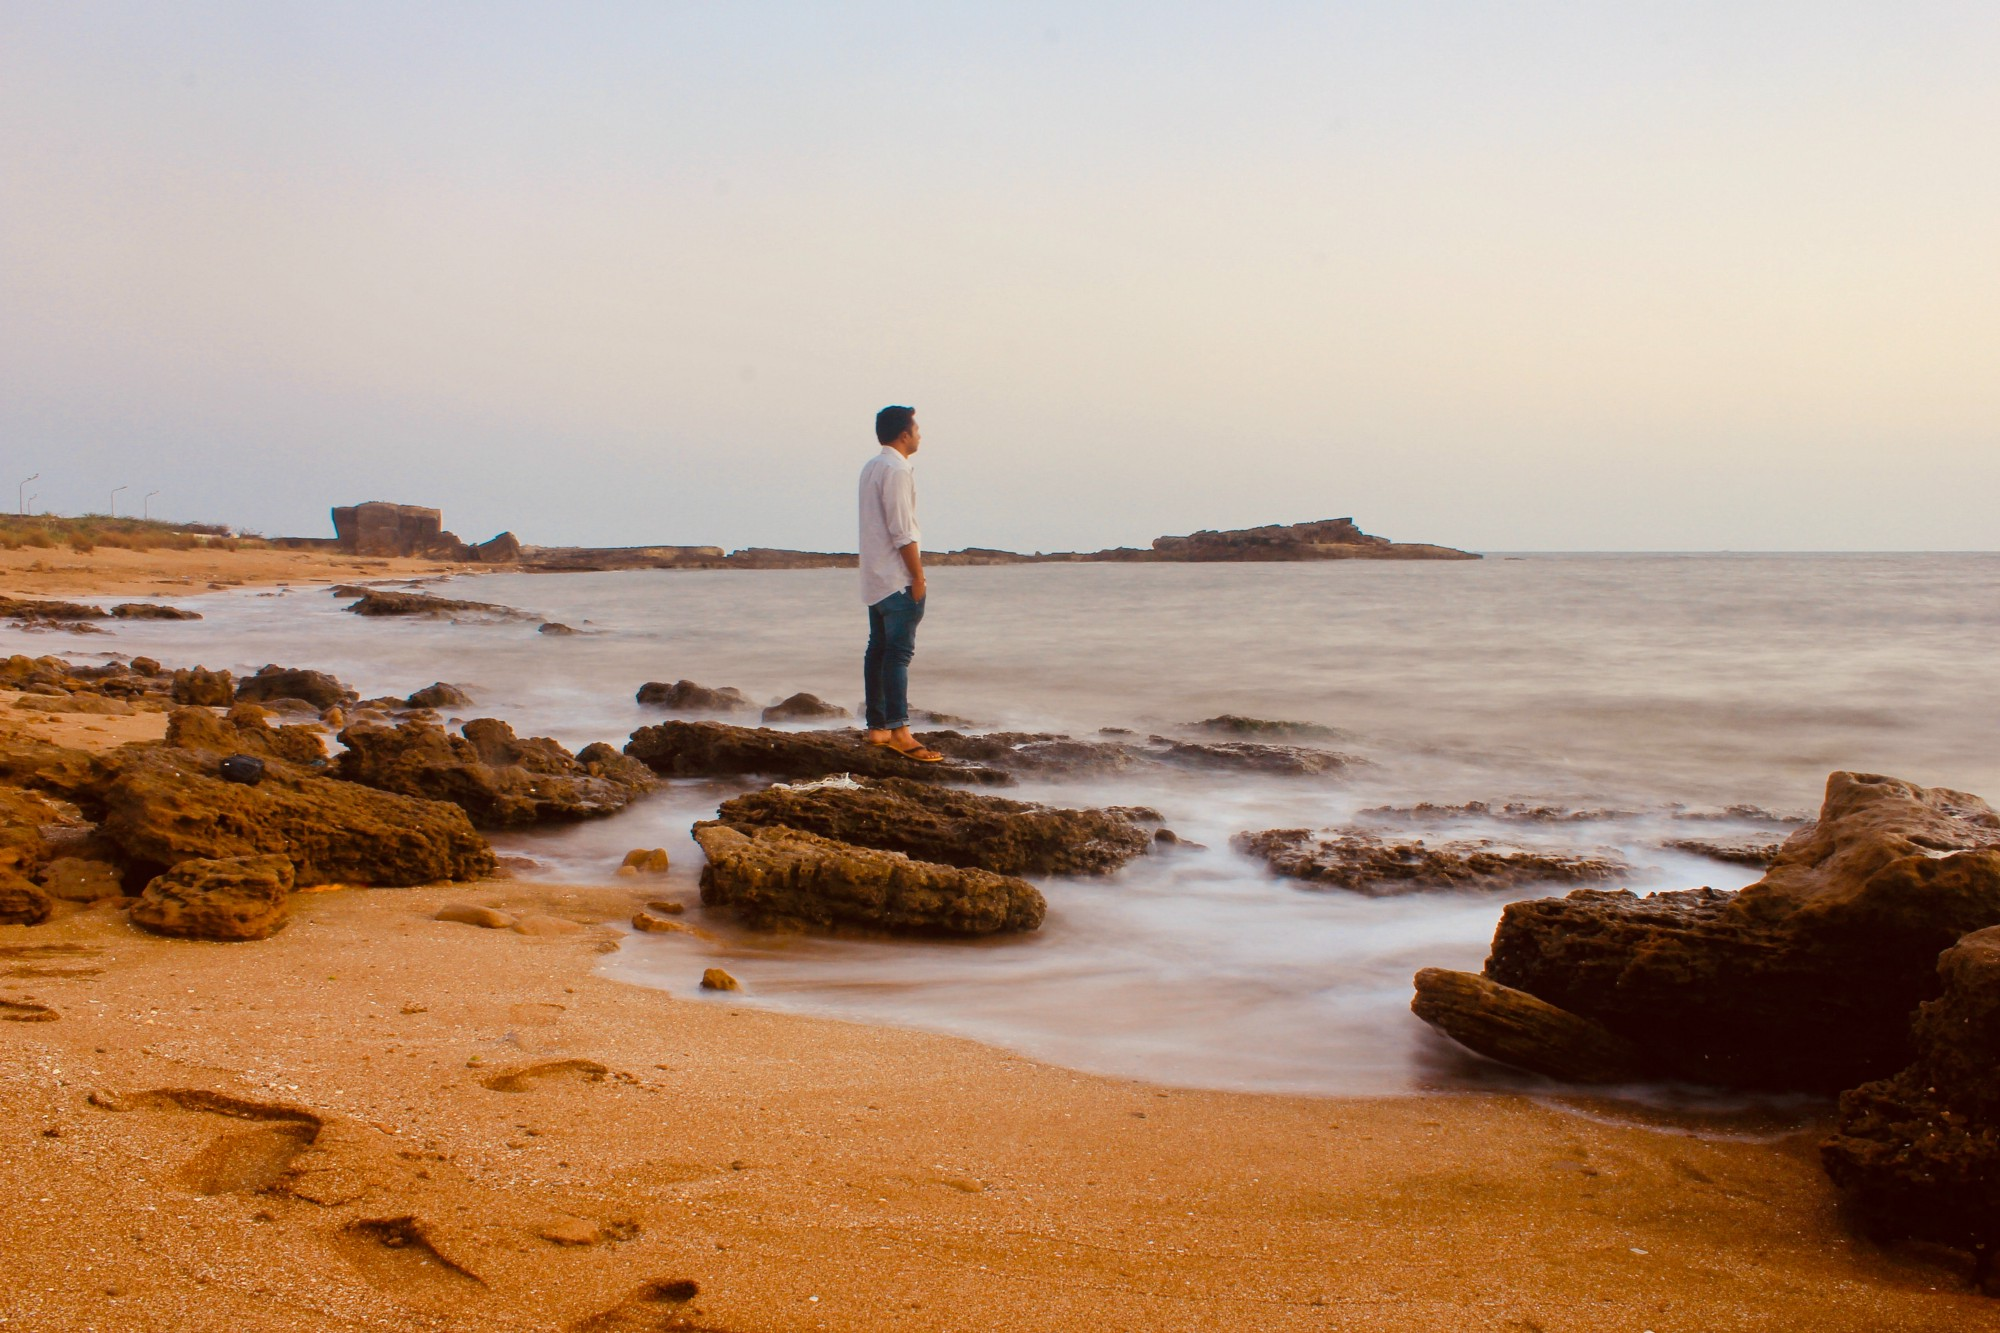 A man in a white shirt and jeans standing on rocks along a beach